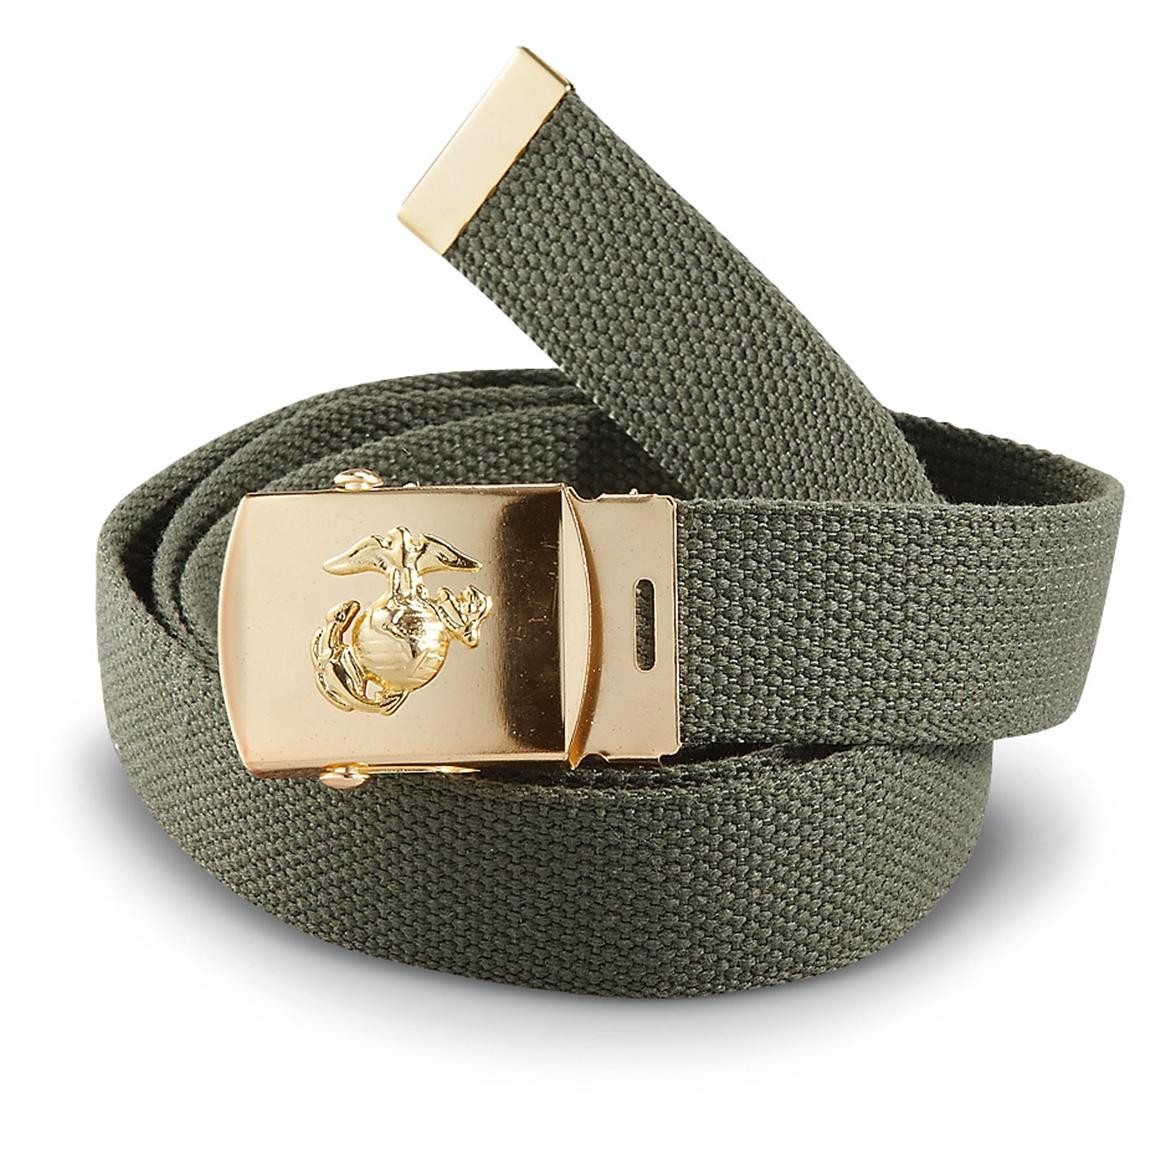 2 New U.S.M.C. Trouser Belts, Olive Drab / Gold-tone